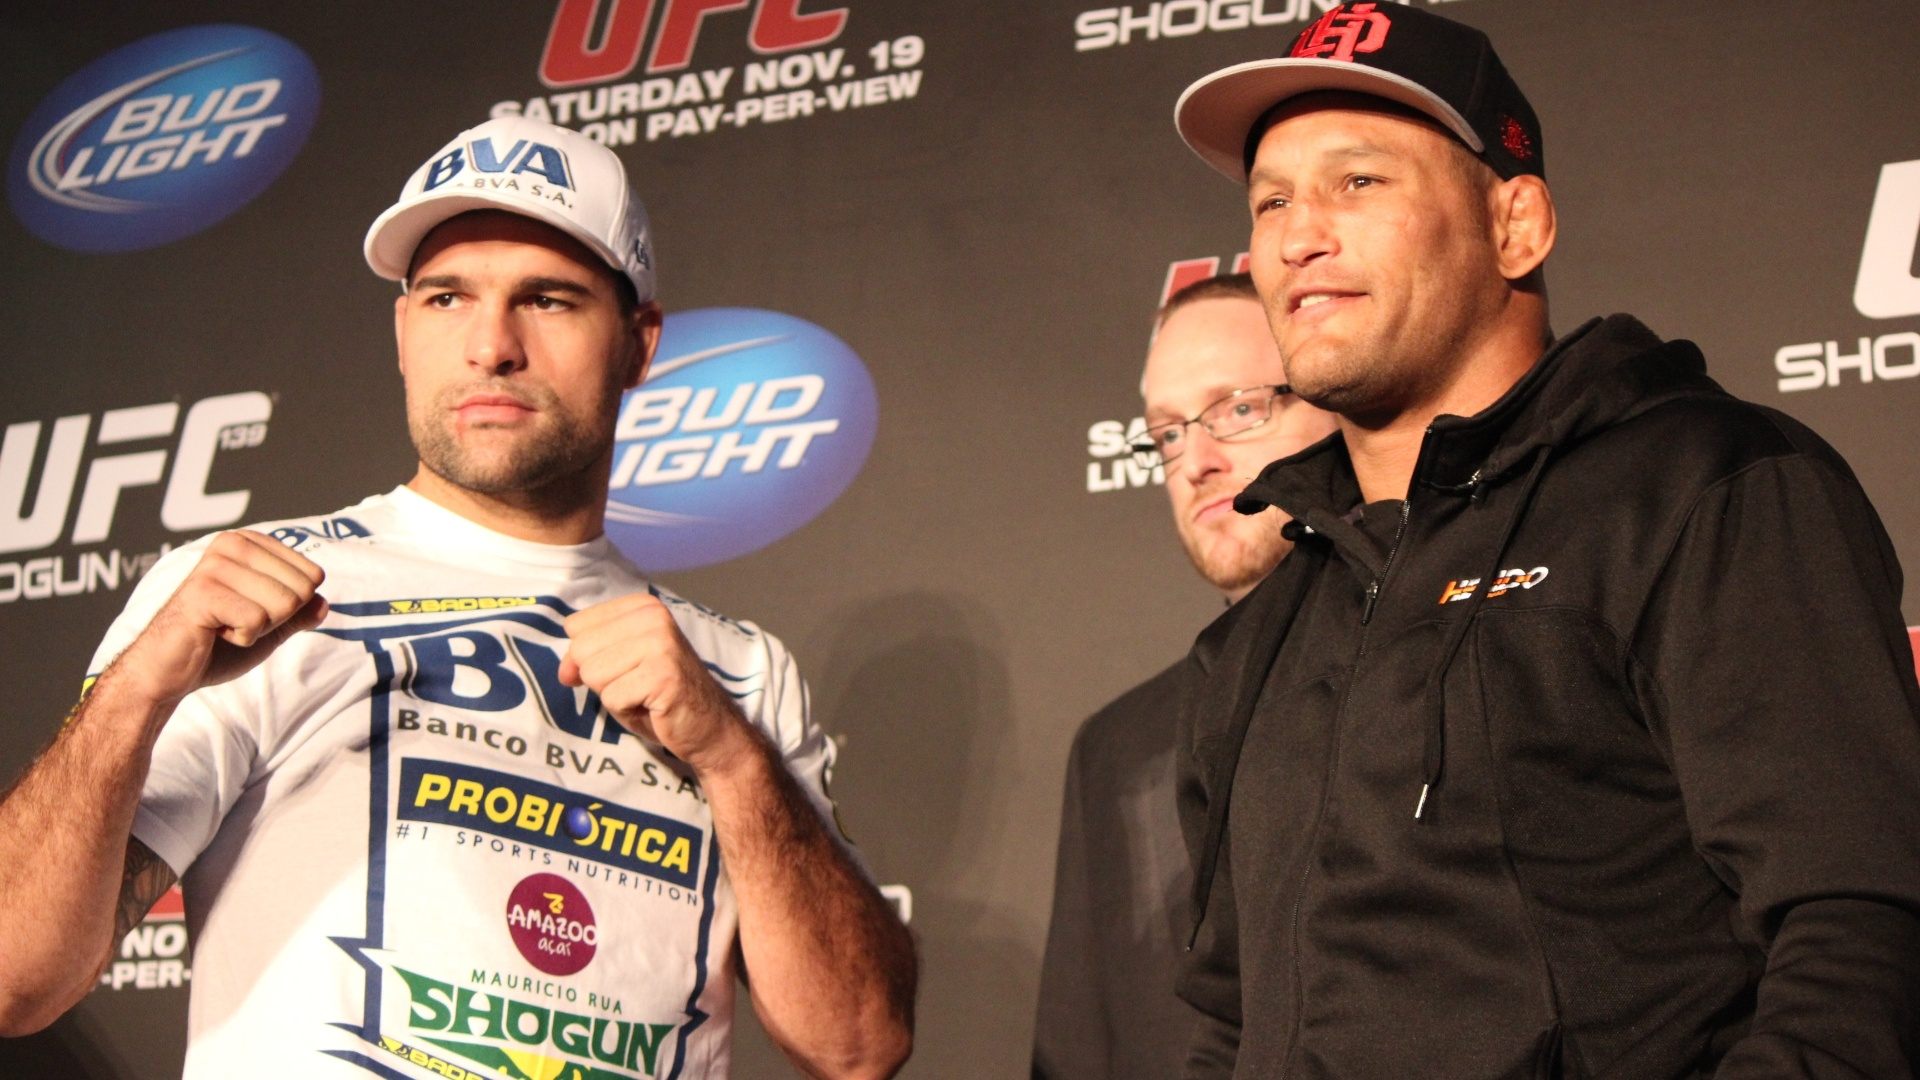 Maurcio Shogun posa com Dan Henderson aps a coletiva do UFC 139